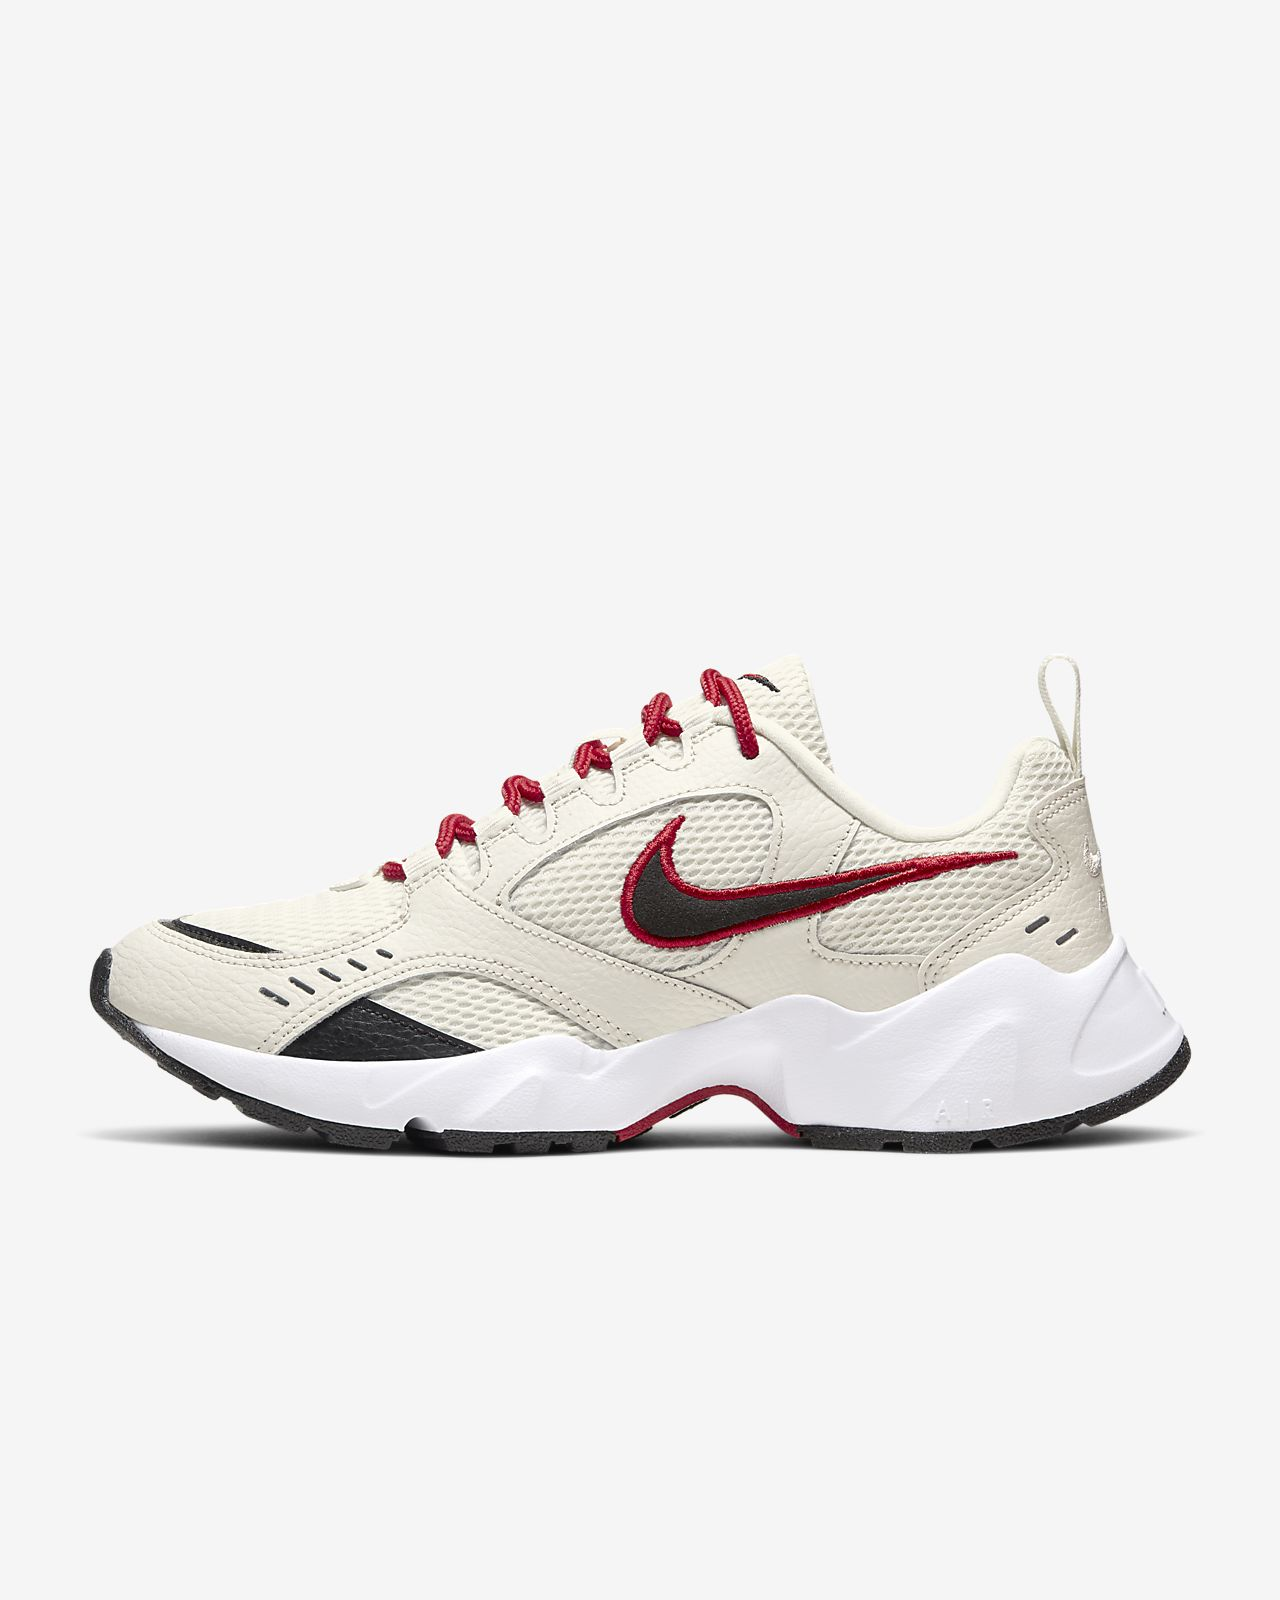 Chaussure Nike Air Heights pour Femme